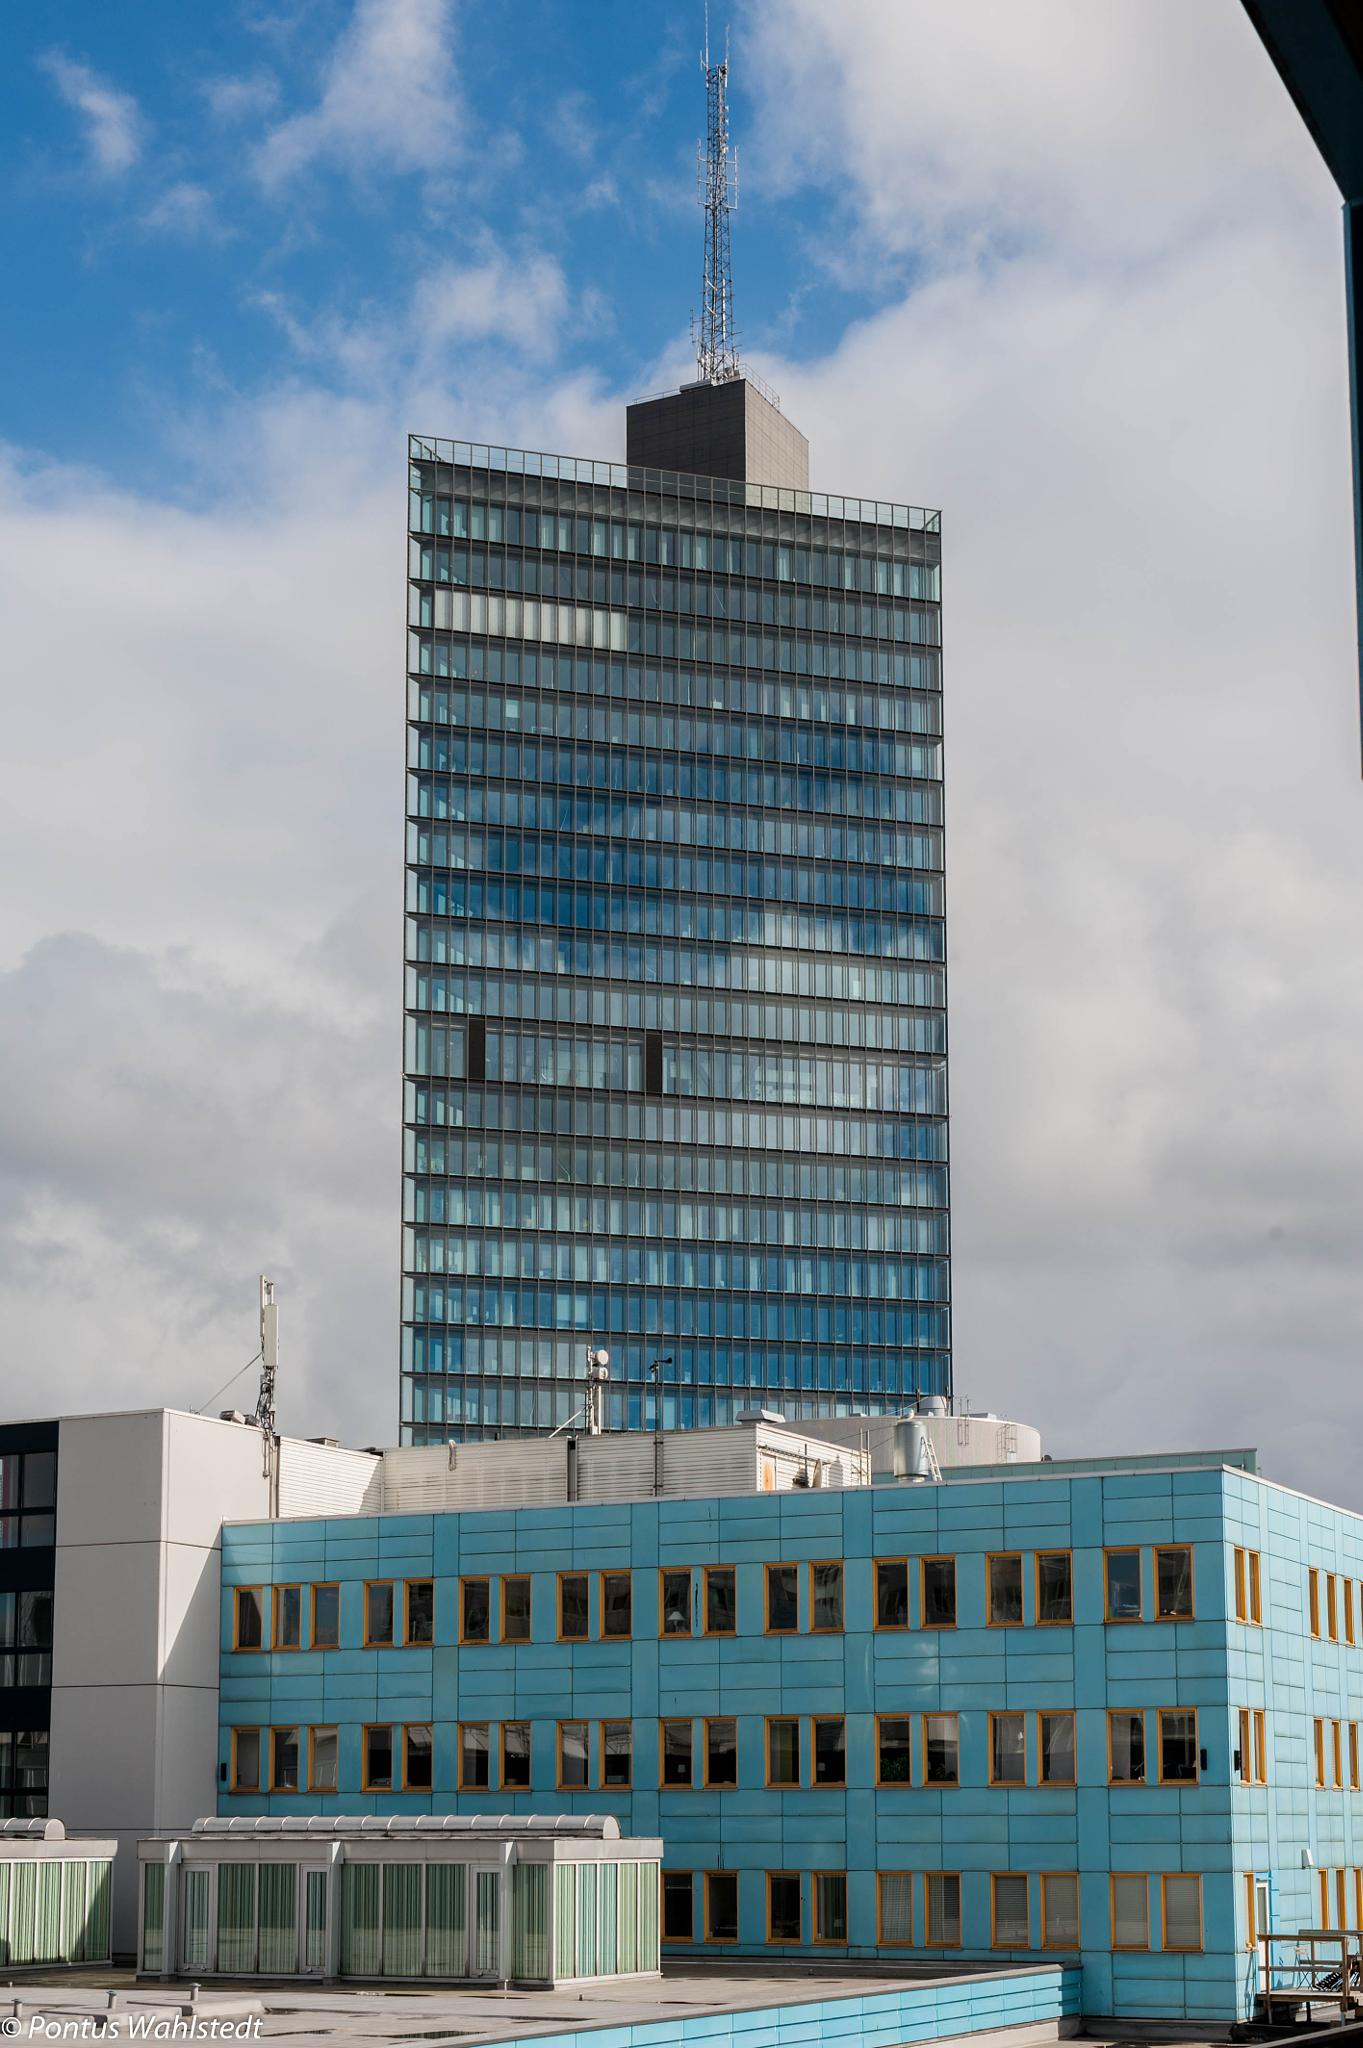 Kista Science Tower by pontus.wahlstedt